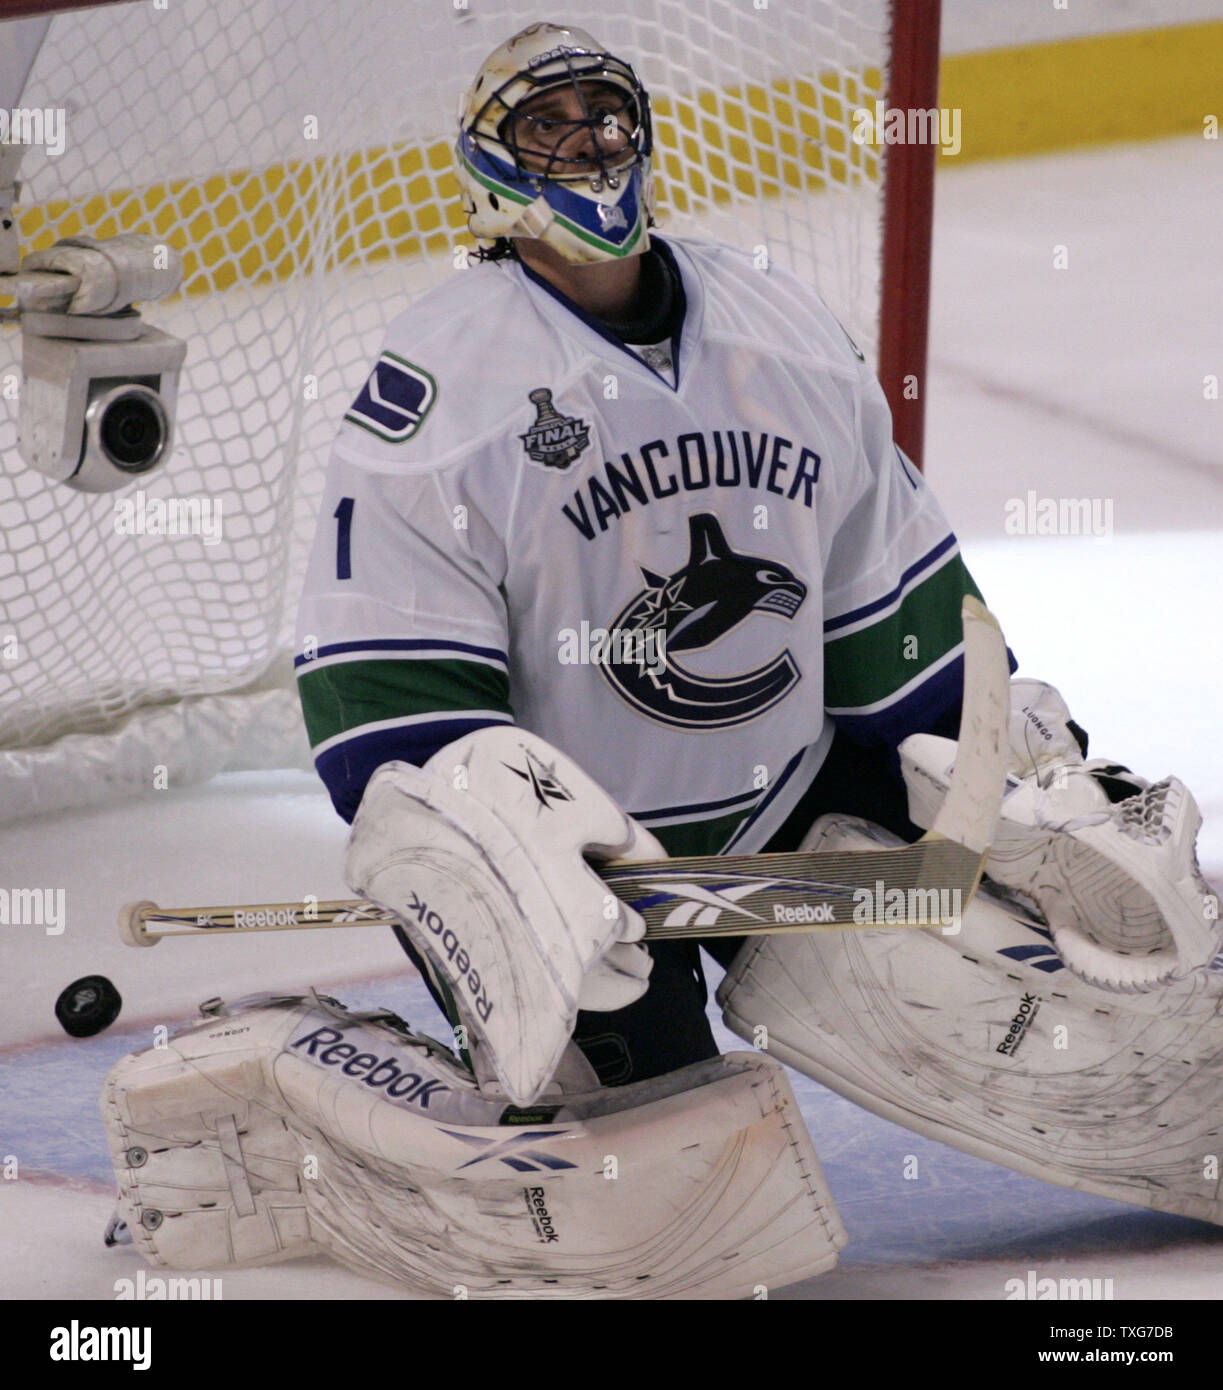 Vancouver Canucks Goaltender Roberto Luongo 1 Reacts After Giving